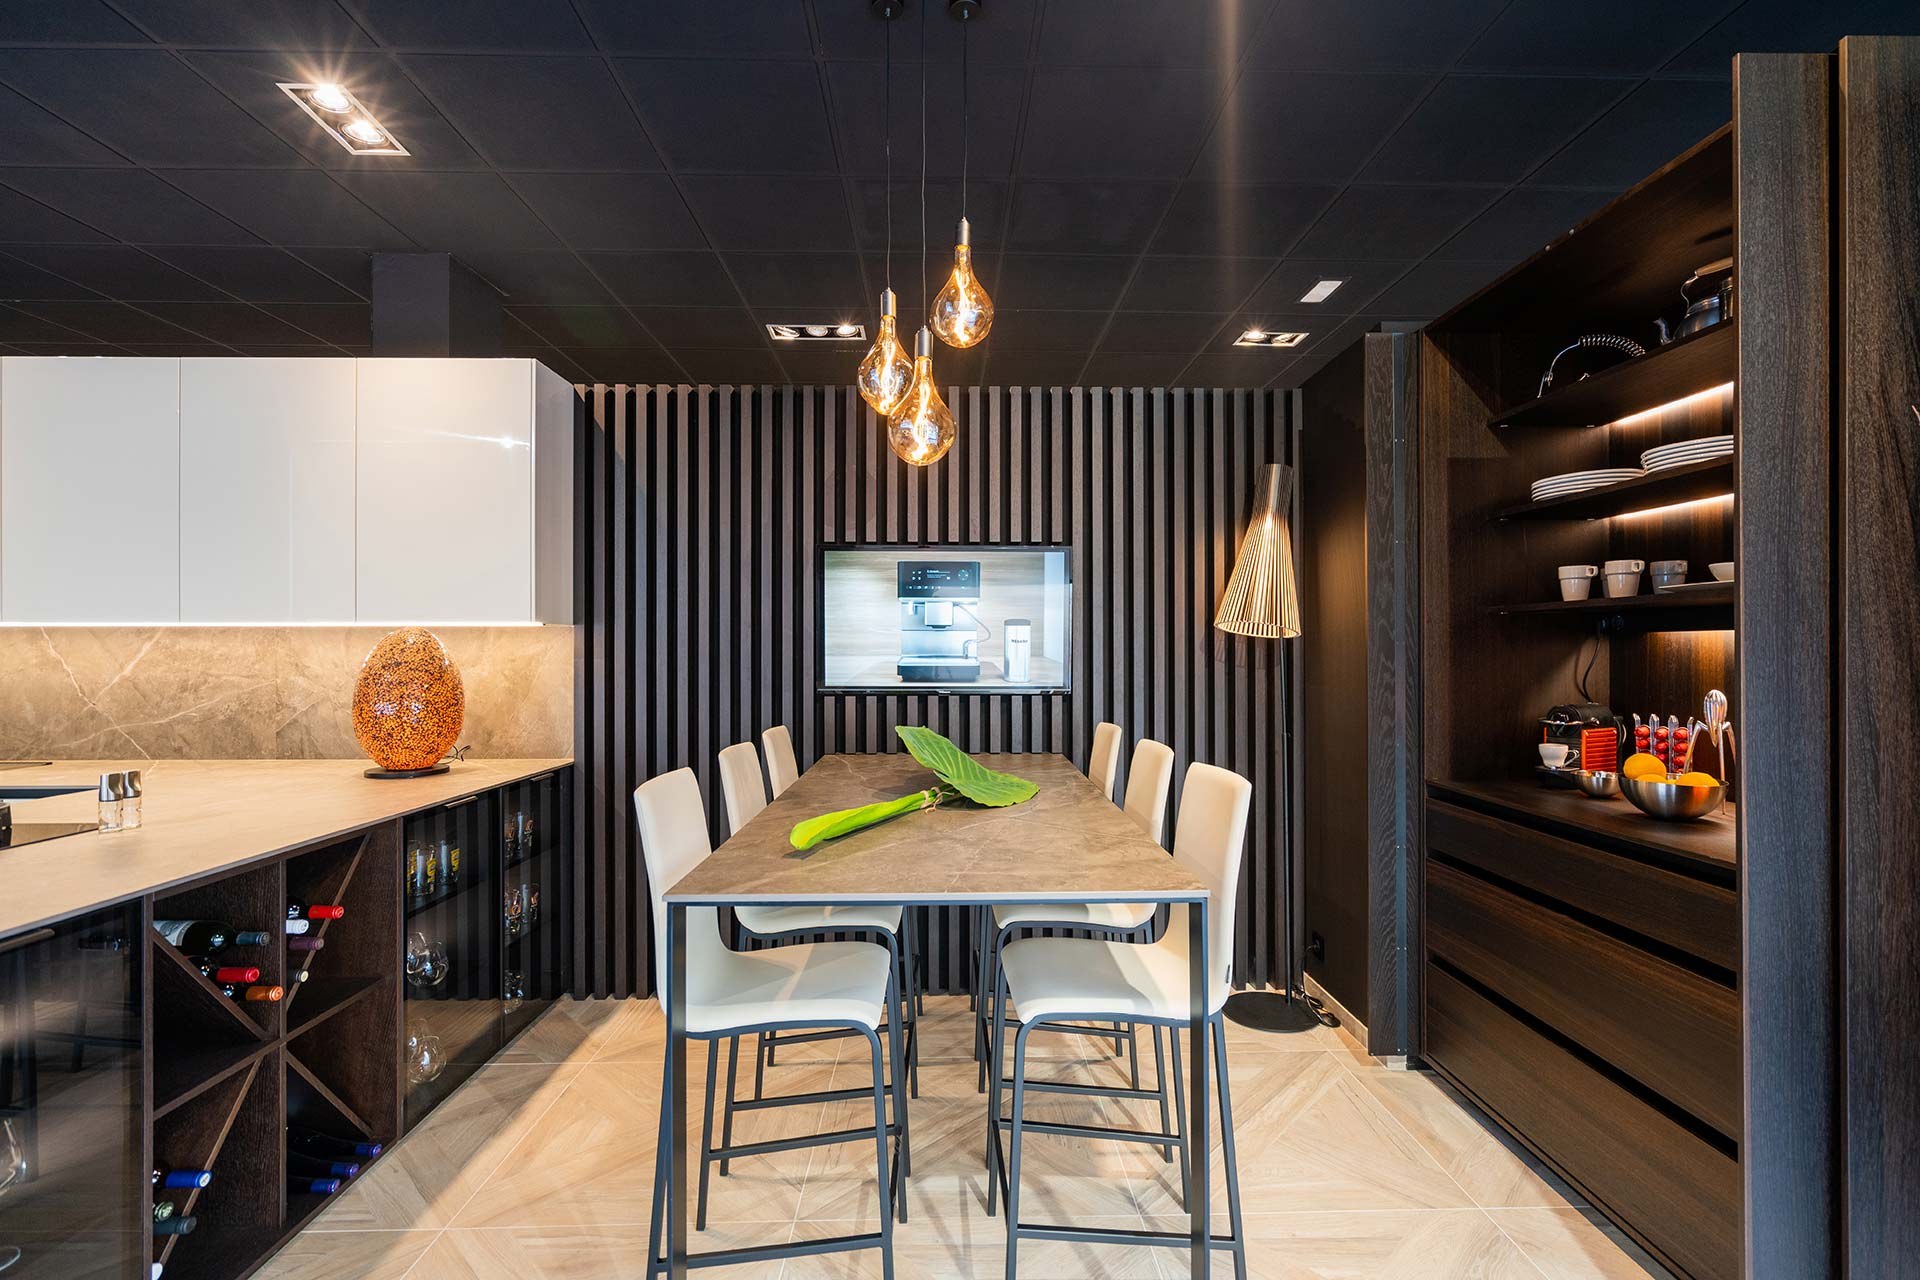 Cuines Fernández, a new and exclusive Santos kitchen showroom